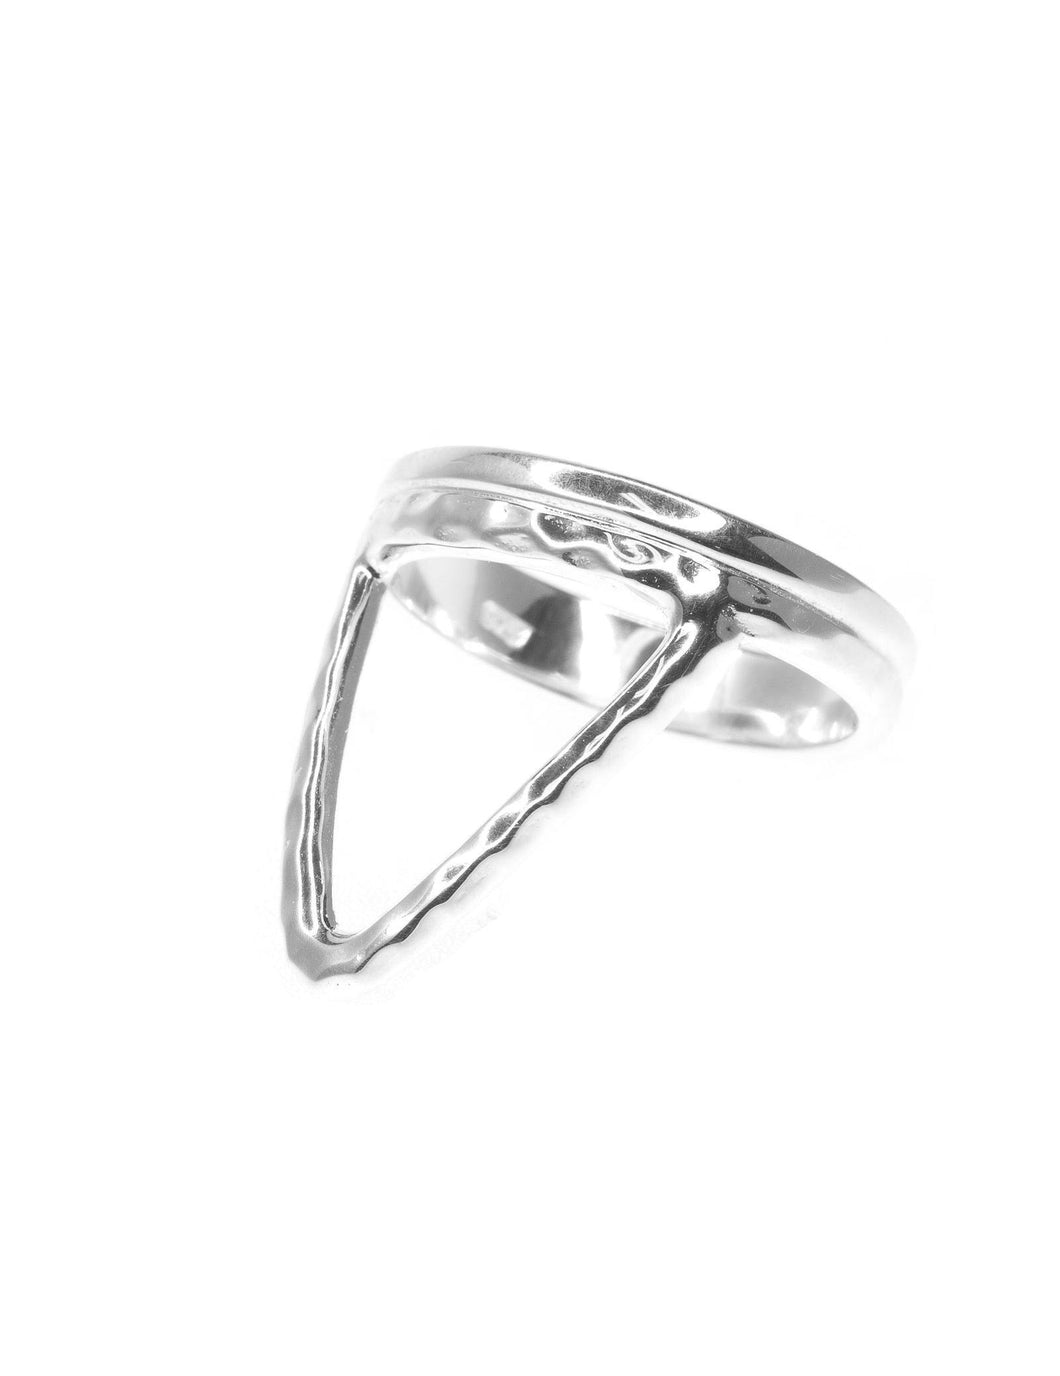 Forbidden Silver Ring by Pastiche available at My Harley and Rose